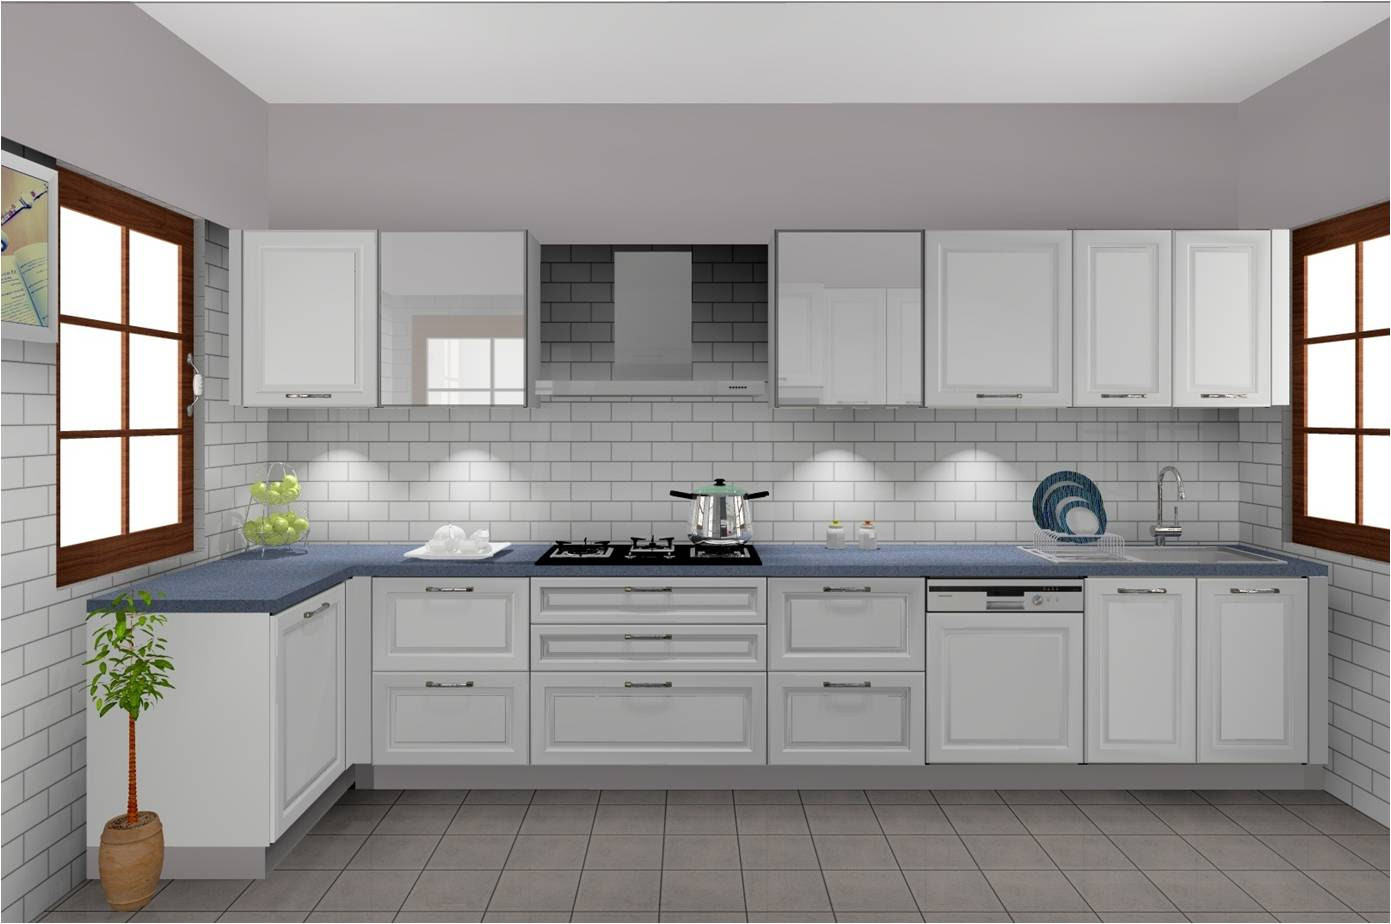 Home Architec Ideas Modular Kitchen Design Grey And White